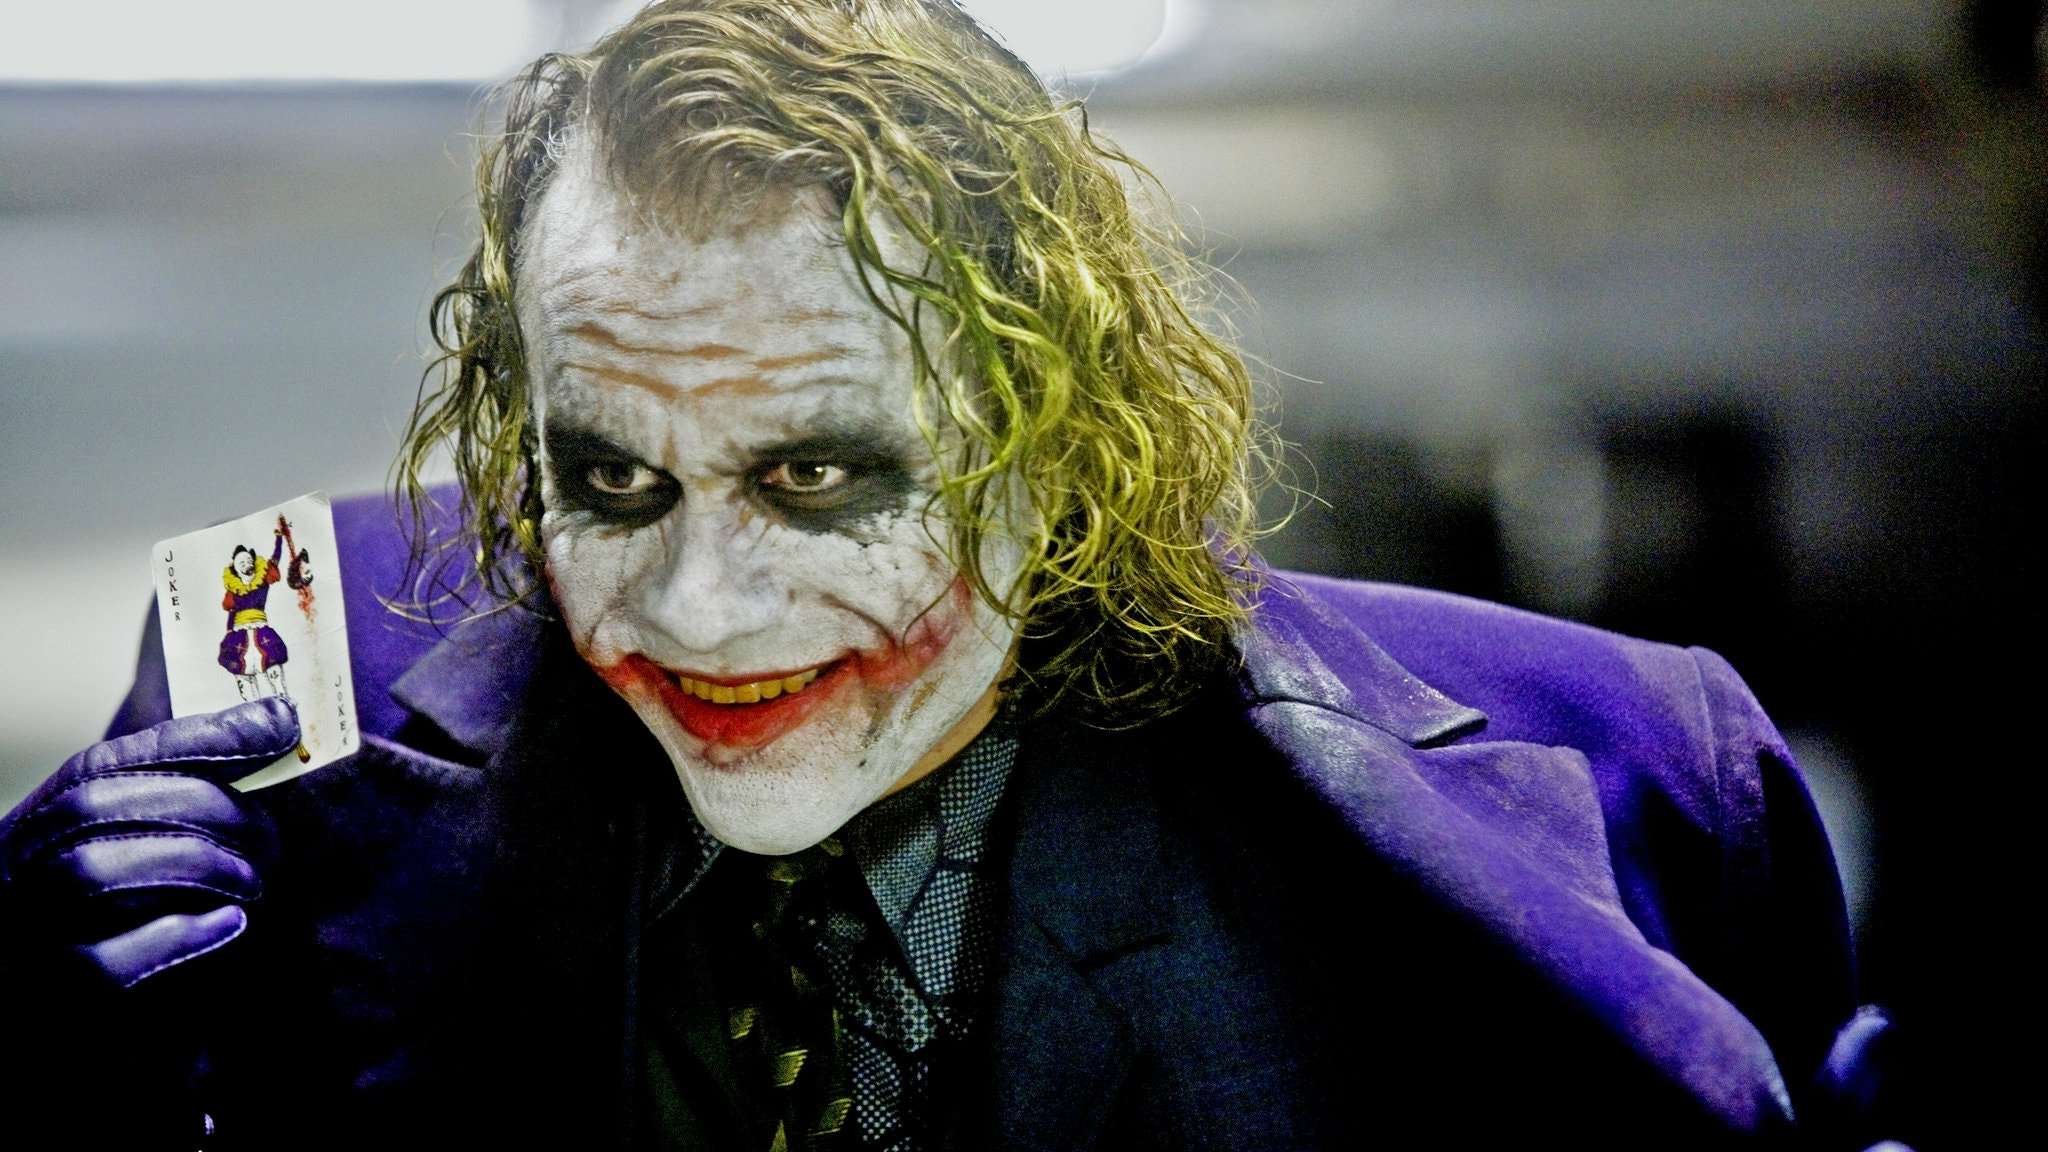 The Joker, one of the most chilling villains of all time, has one of the best villain monologues at the end of The Dark Knight.